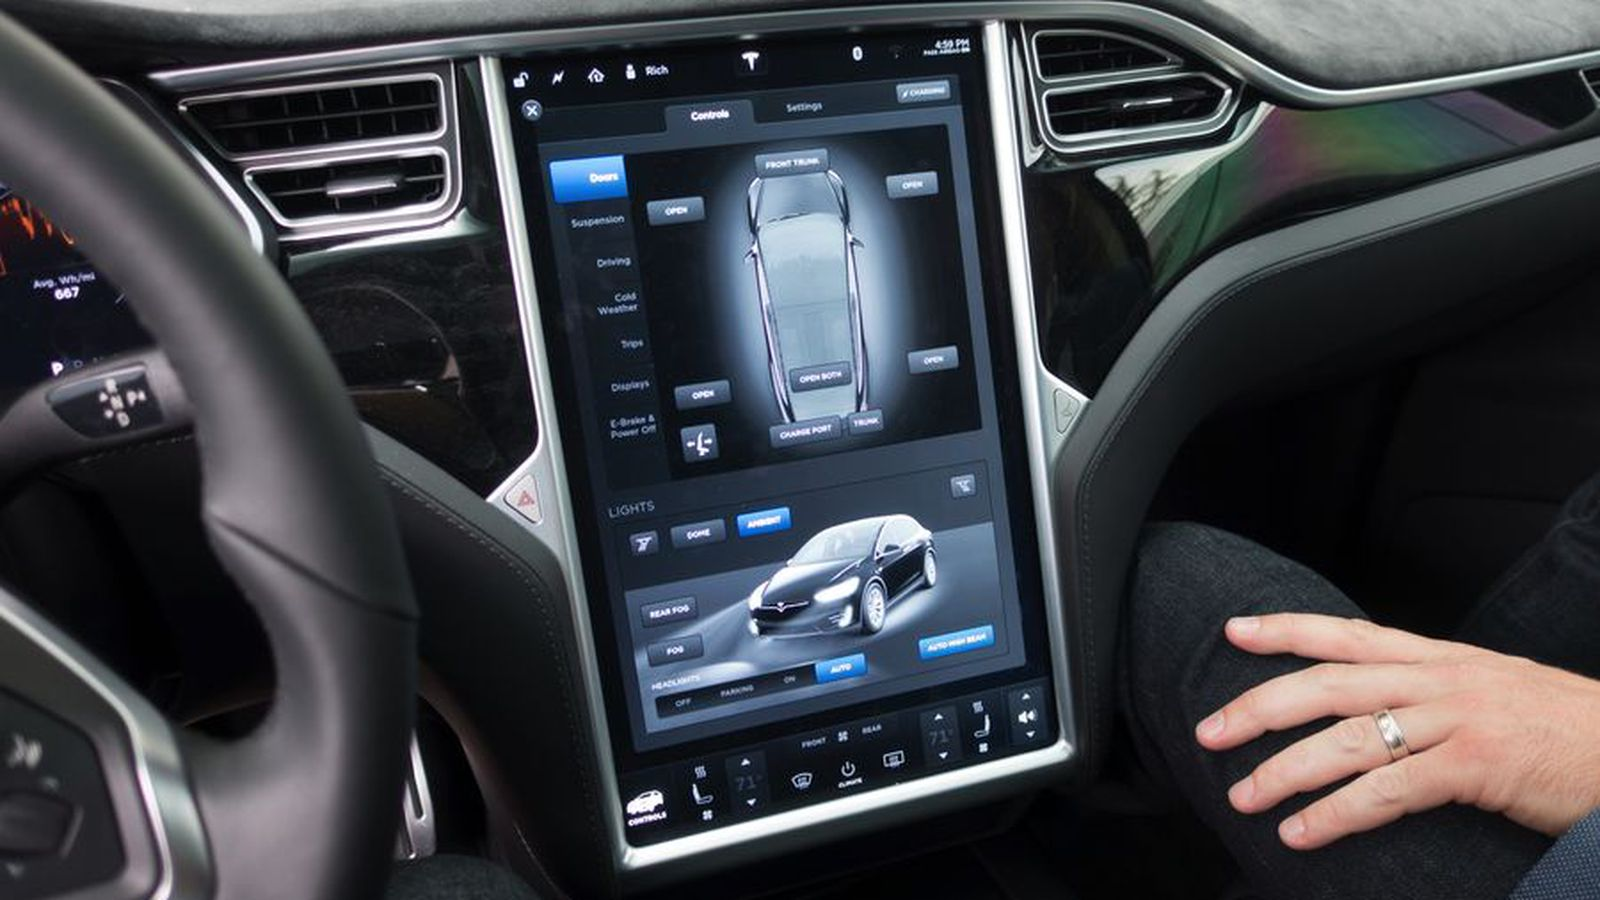 Latest Tesla Software Update >> Tesla owners are ignoring autopilot safety advice and putting the results on YouTube - The Verge